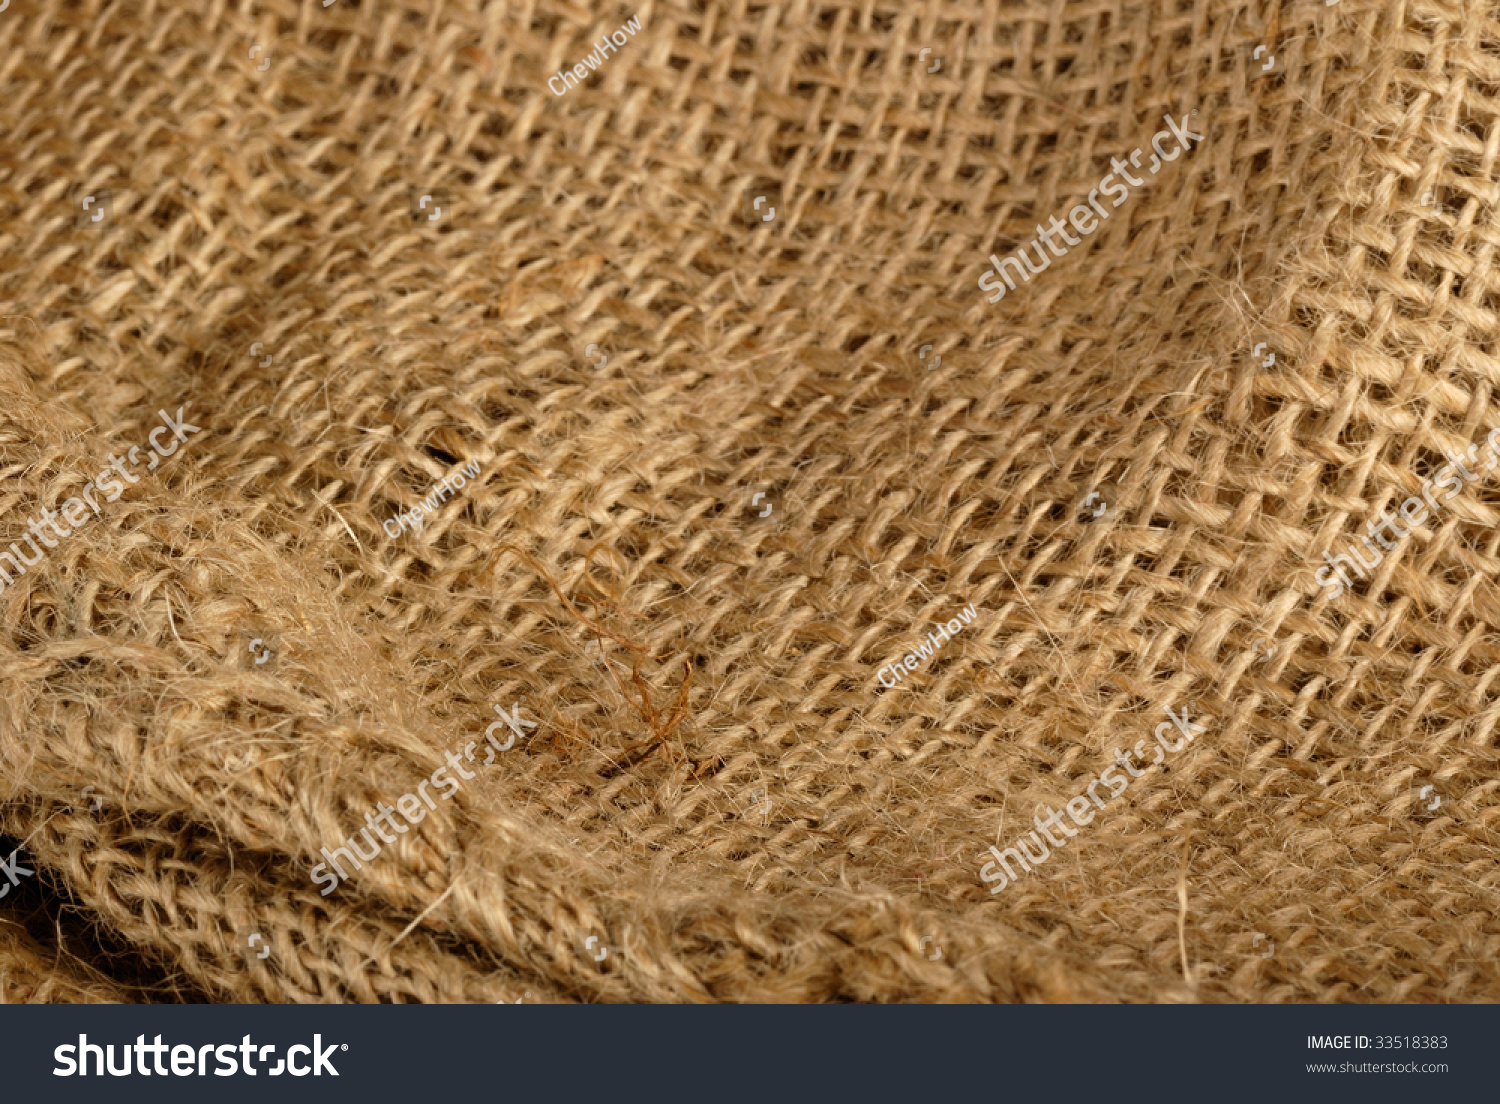 Burlap material stock photo 33518383 shutterstock for What is burlap material